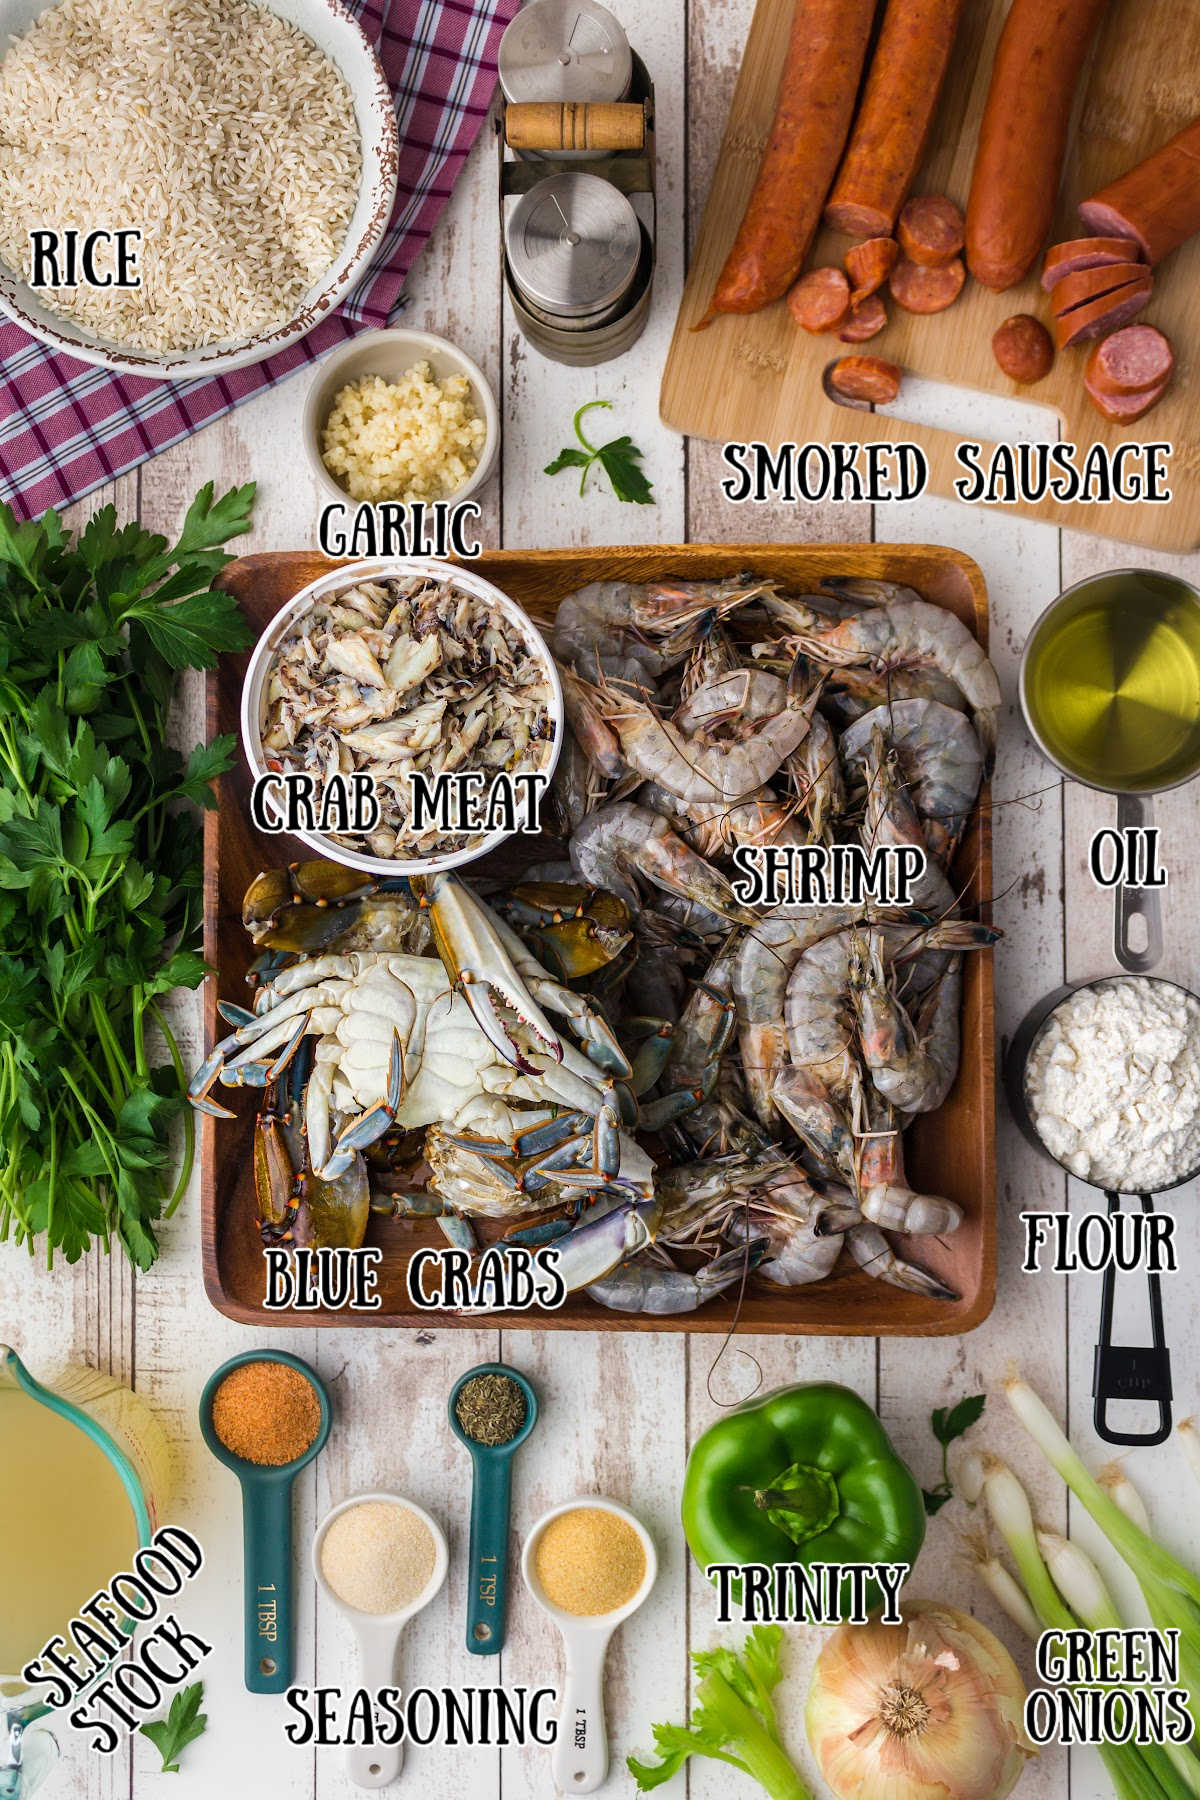 ingredients image for a seafood gumbo